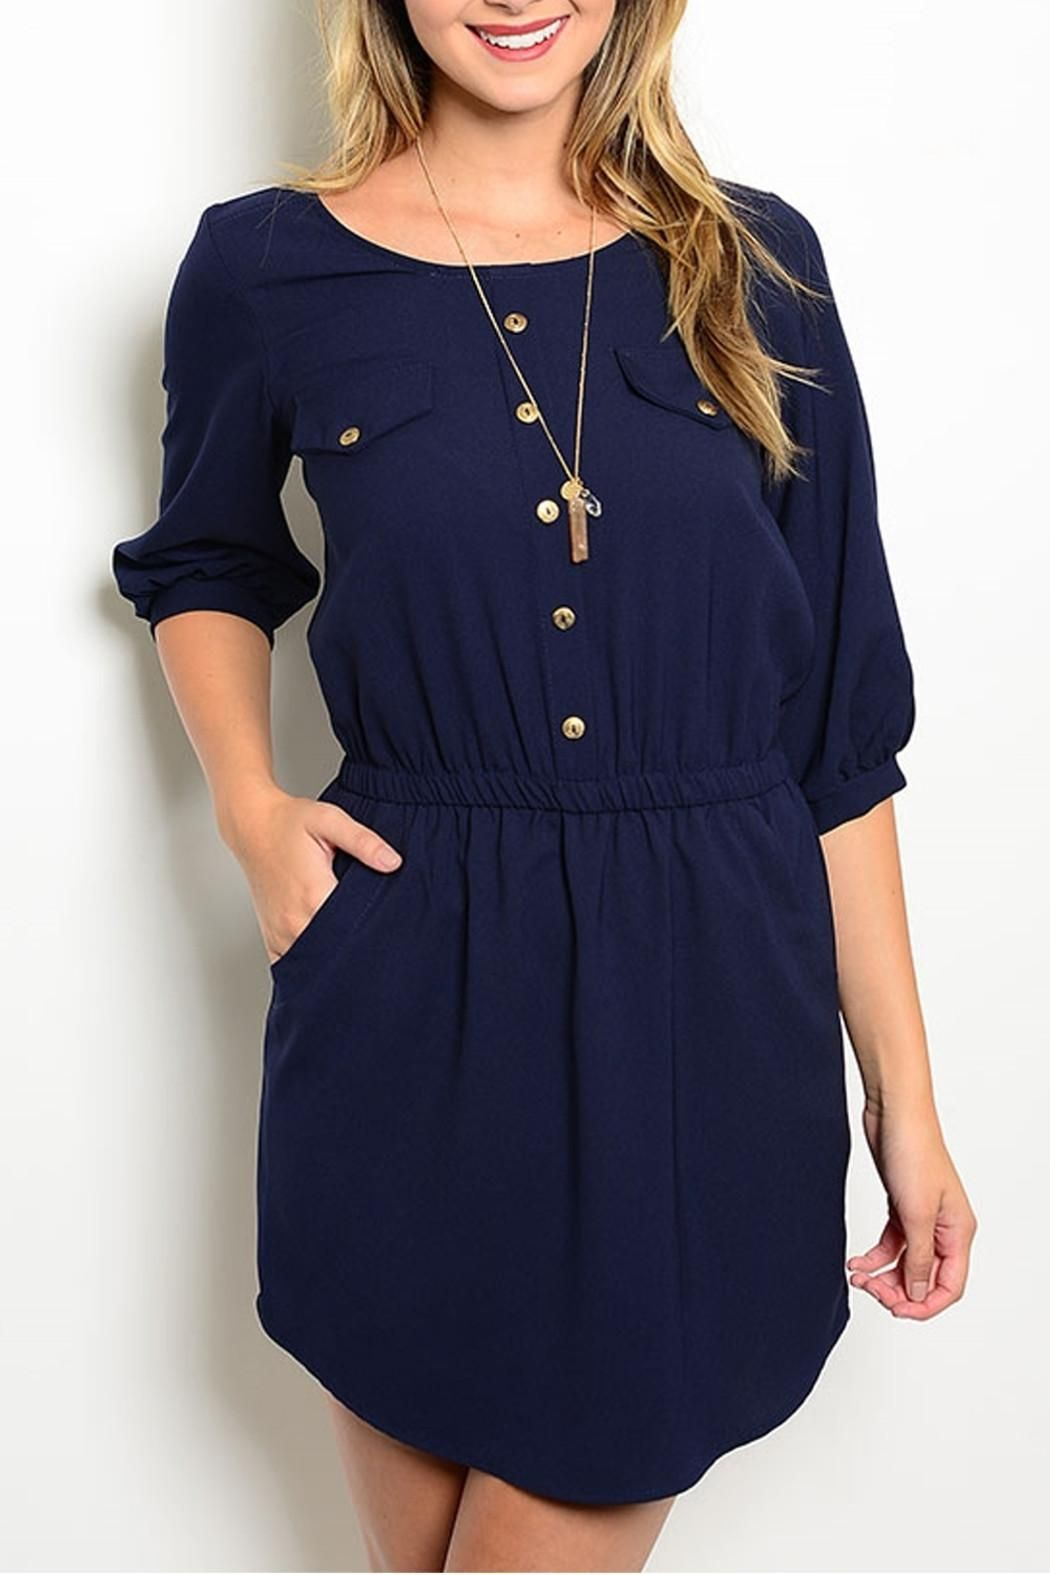 Woven dress features a rounded neckline, 3/4 sleeves and chest pocket detail. Flattering gathered waist and hidden pocket accent.   Navy Pockets Dress by Lila. Clothing - Dresses - Casual Clothing - Dresses - Long Sleeve Clothing - Dresses - Work New Jersey